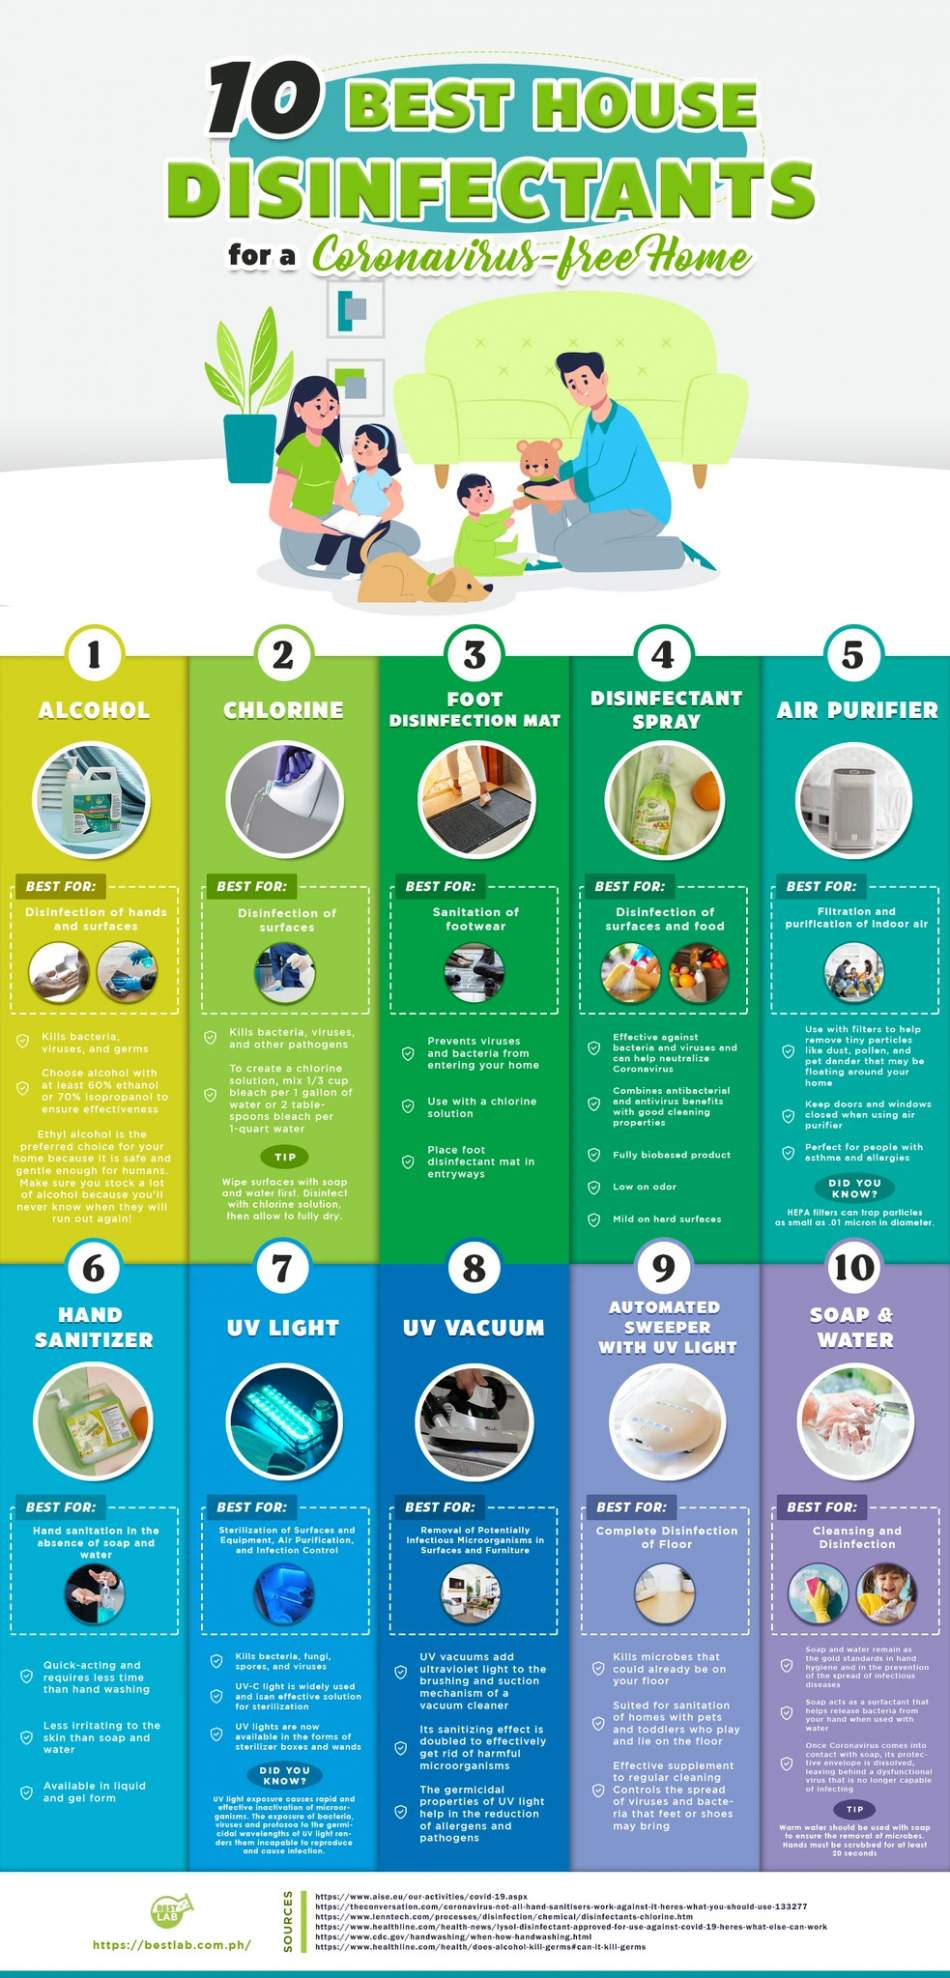 Disinfectants-Home-Covid-19